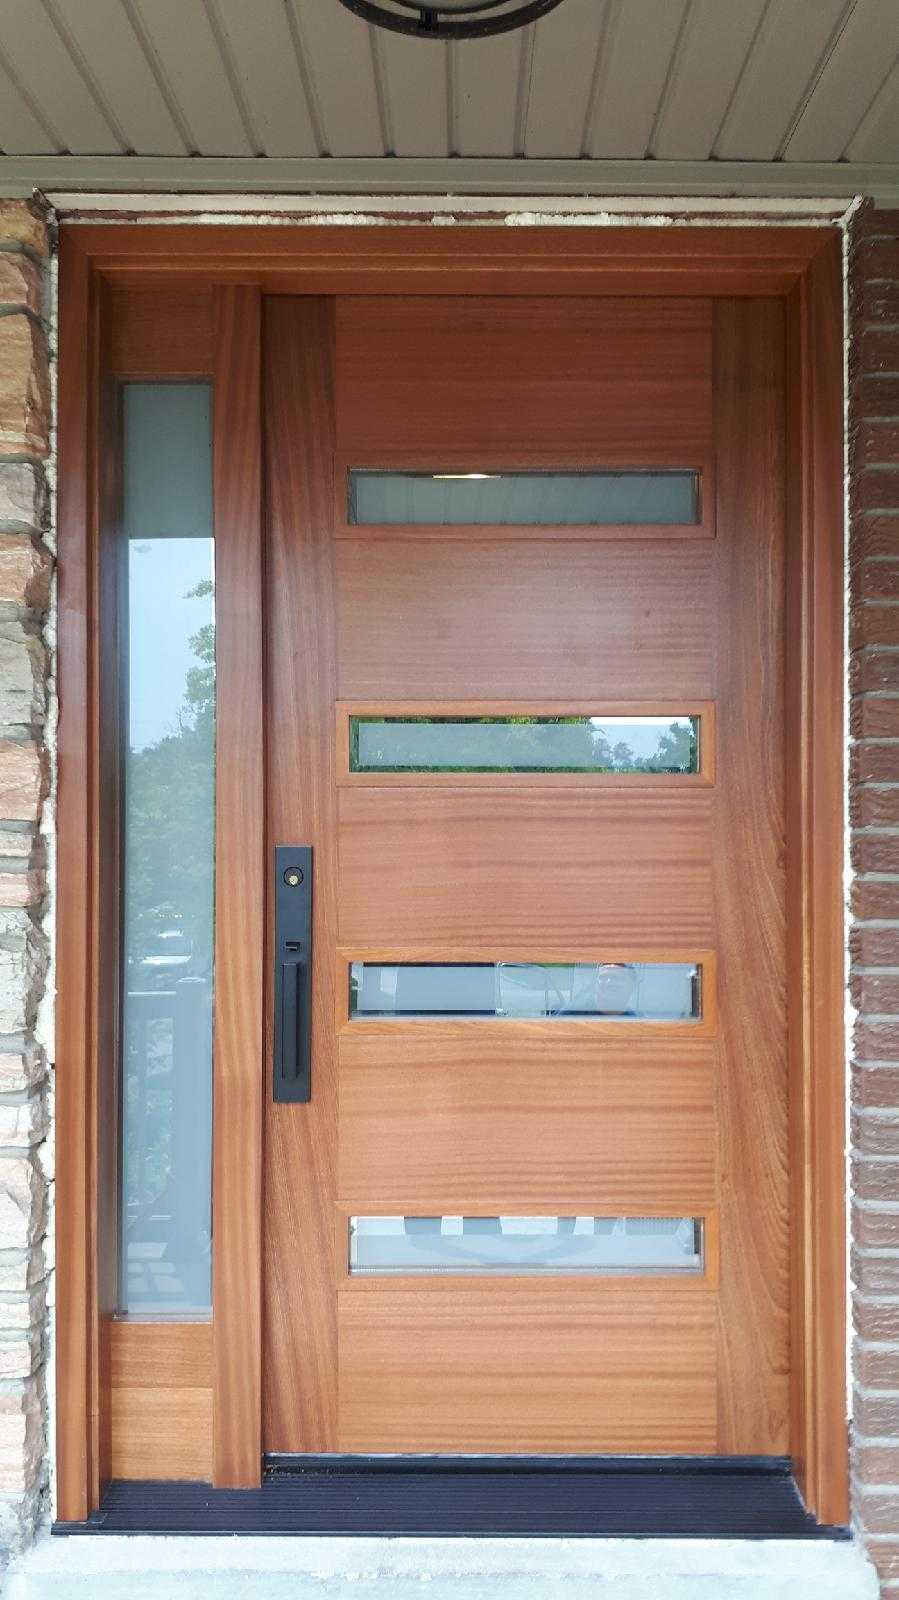 """We are what we repeatedly do. Excellence, then is not an act, but a habit"" #SolidWoodDoors, #Mahogany, #CustomMade, #CustomWoodDoors,#EntryDoors.#DistinctiveLo­ok, #FityourHome Made by #NorthwoodDoorsInc. Your best value and #QualityDoors, #HandCraftedDoors. Every door #ManufacturedDoors by us has our corporate stamp - a testament to our dedication and passion in #Woodwork. Let #NorthwoodDoorsInc. add to your home's #CurbAppeal by enhancing the quality and beauty of your #EntryDoor. #MadeinCanada Visit our #Showroom to envision how one of our many doors on display might look like at your home. Contact us today Tel. 416-253-2034, info@northwooddoors.com, www.northwooddoor.com"